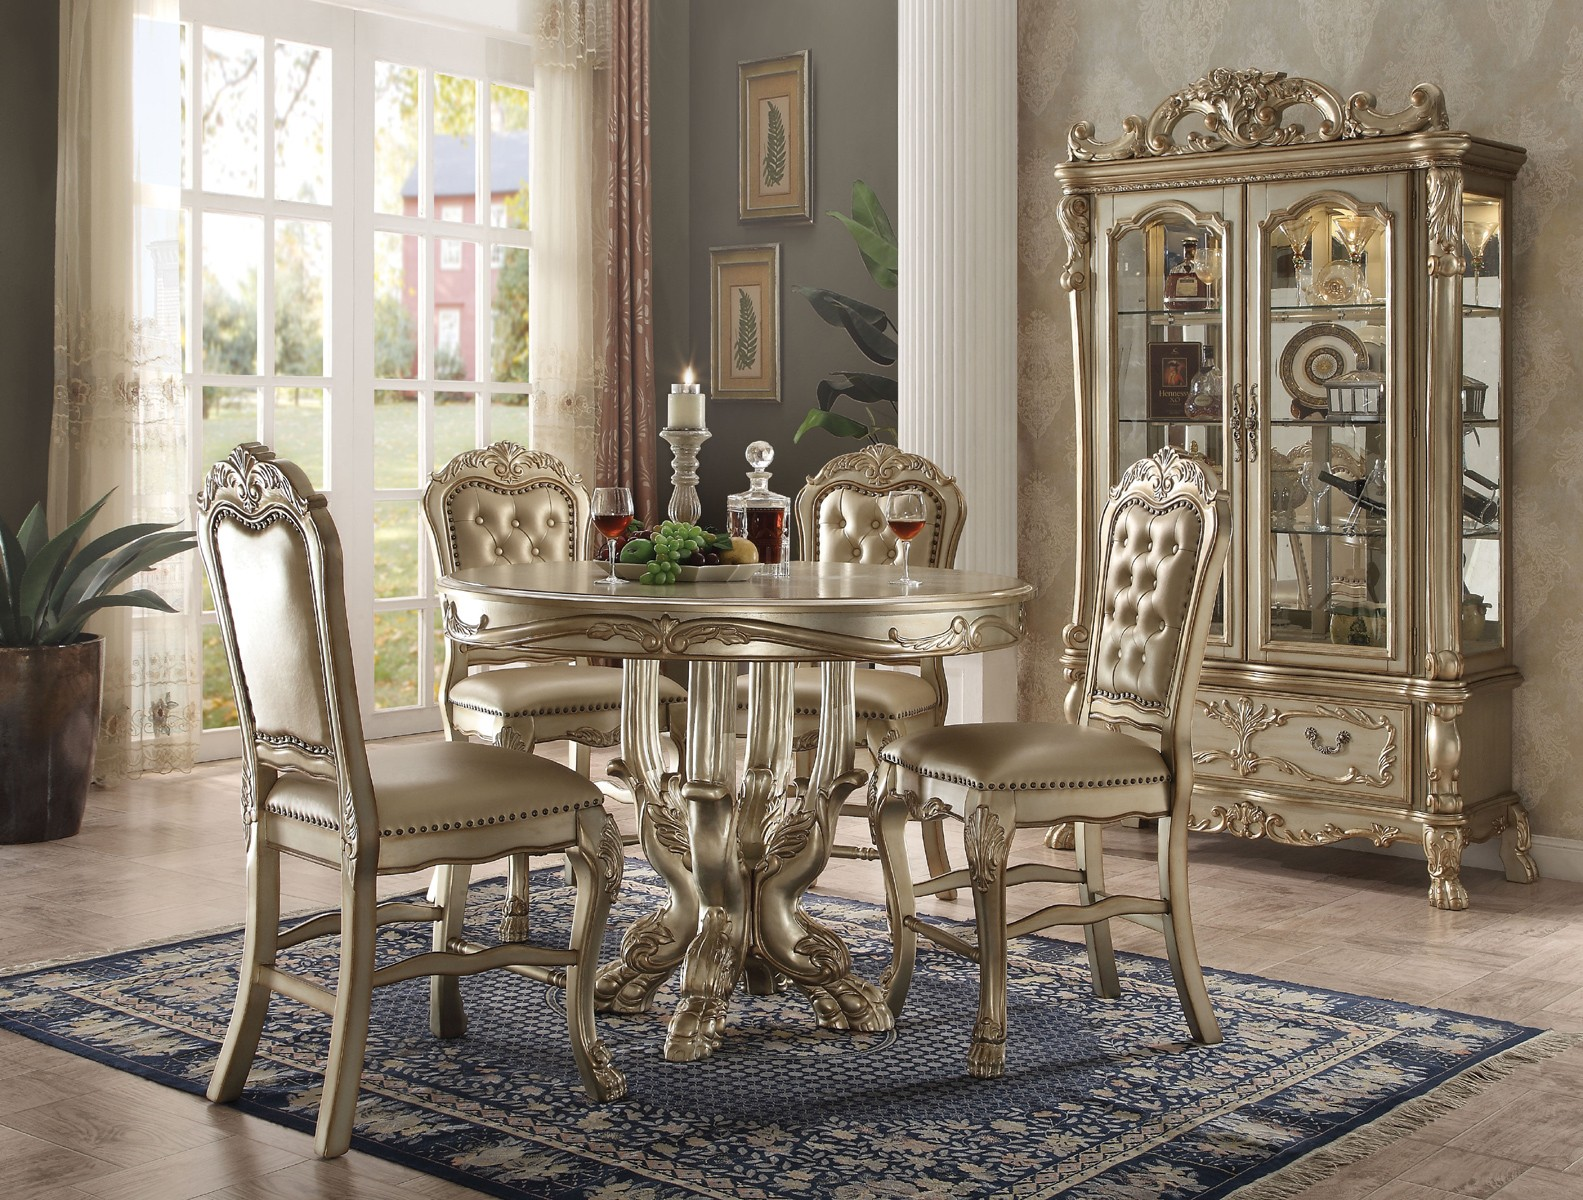 Acme Dresden 5 Piece Round Counter Height Dining Table Set In Gold Patina  By Dining Rooms Outlet